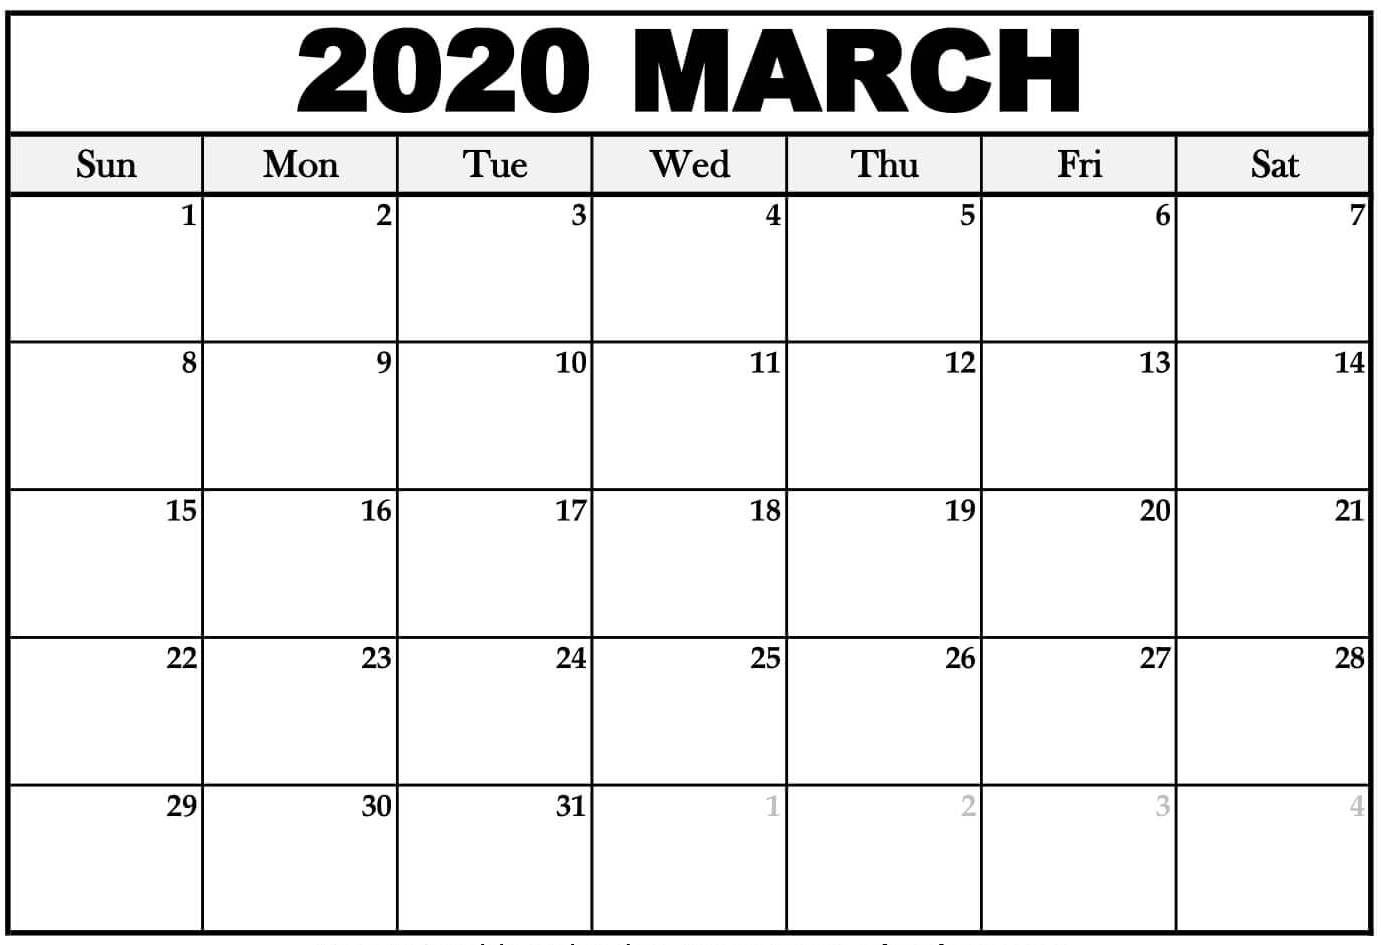 Print Calendar For March 2020 Monthly Fillable Sheets - Set